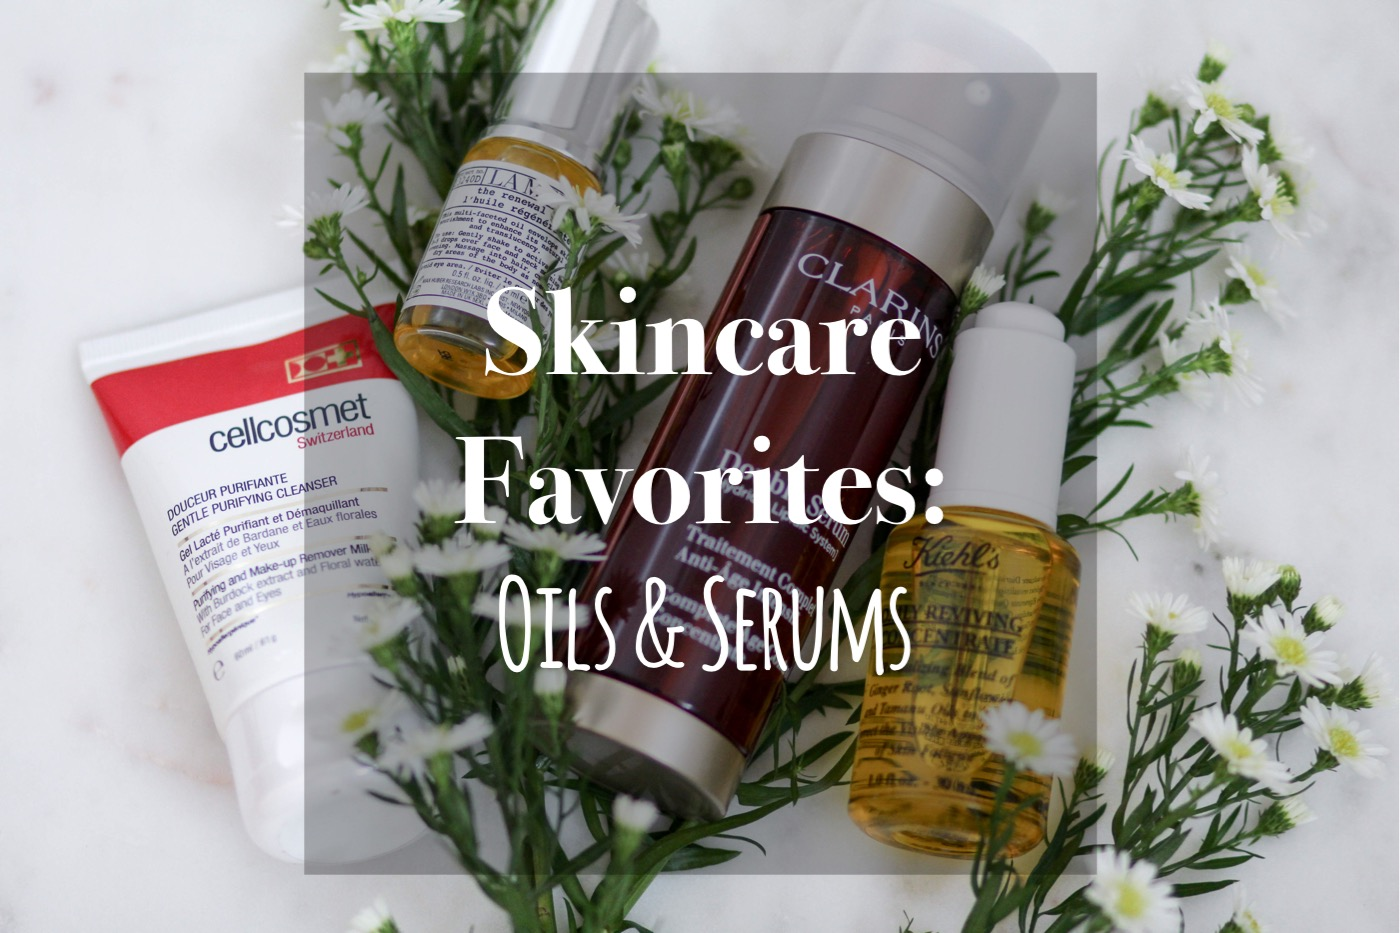 My Current Skincare Favorites: Oils & Serums